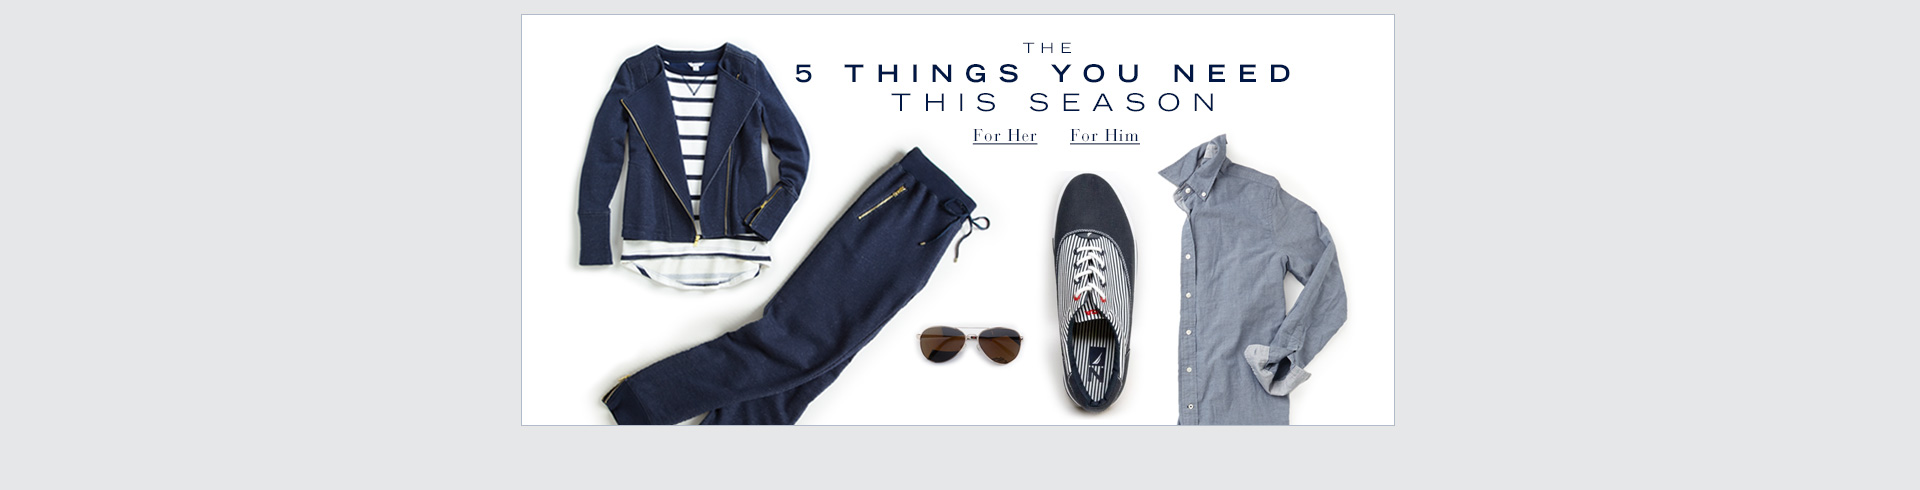 5 Things You Need This Season